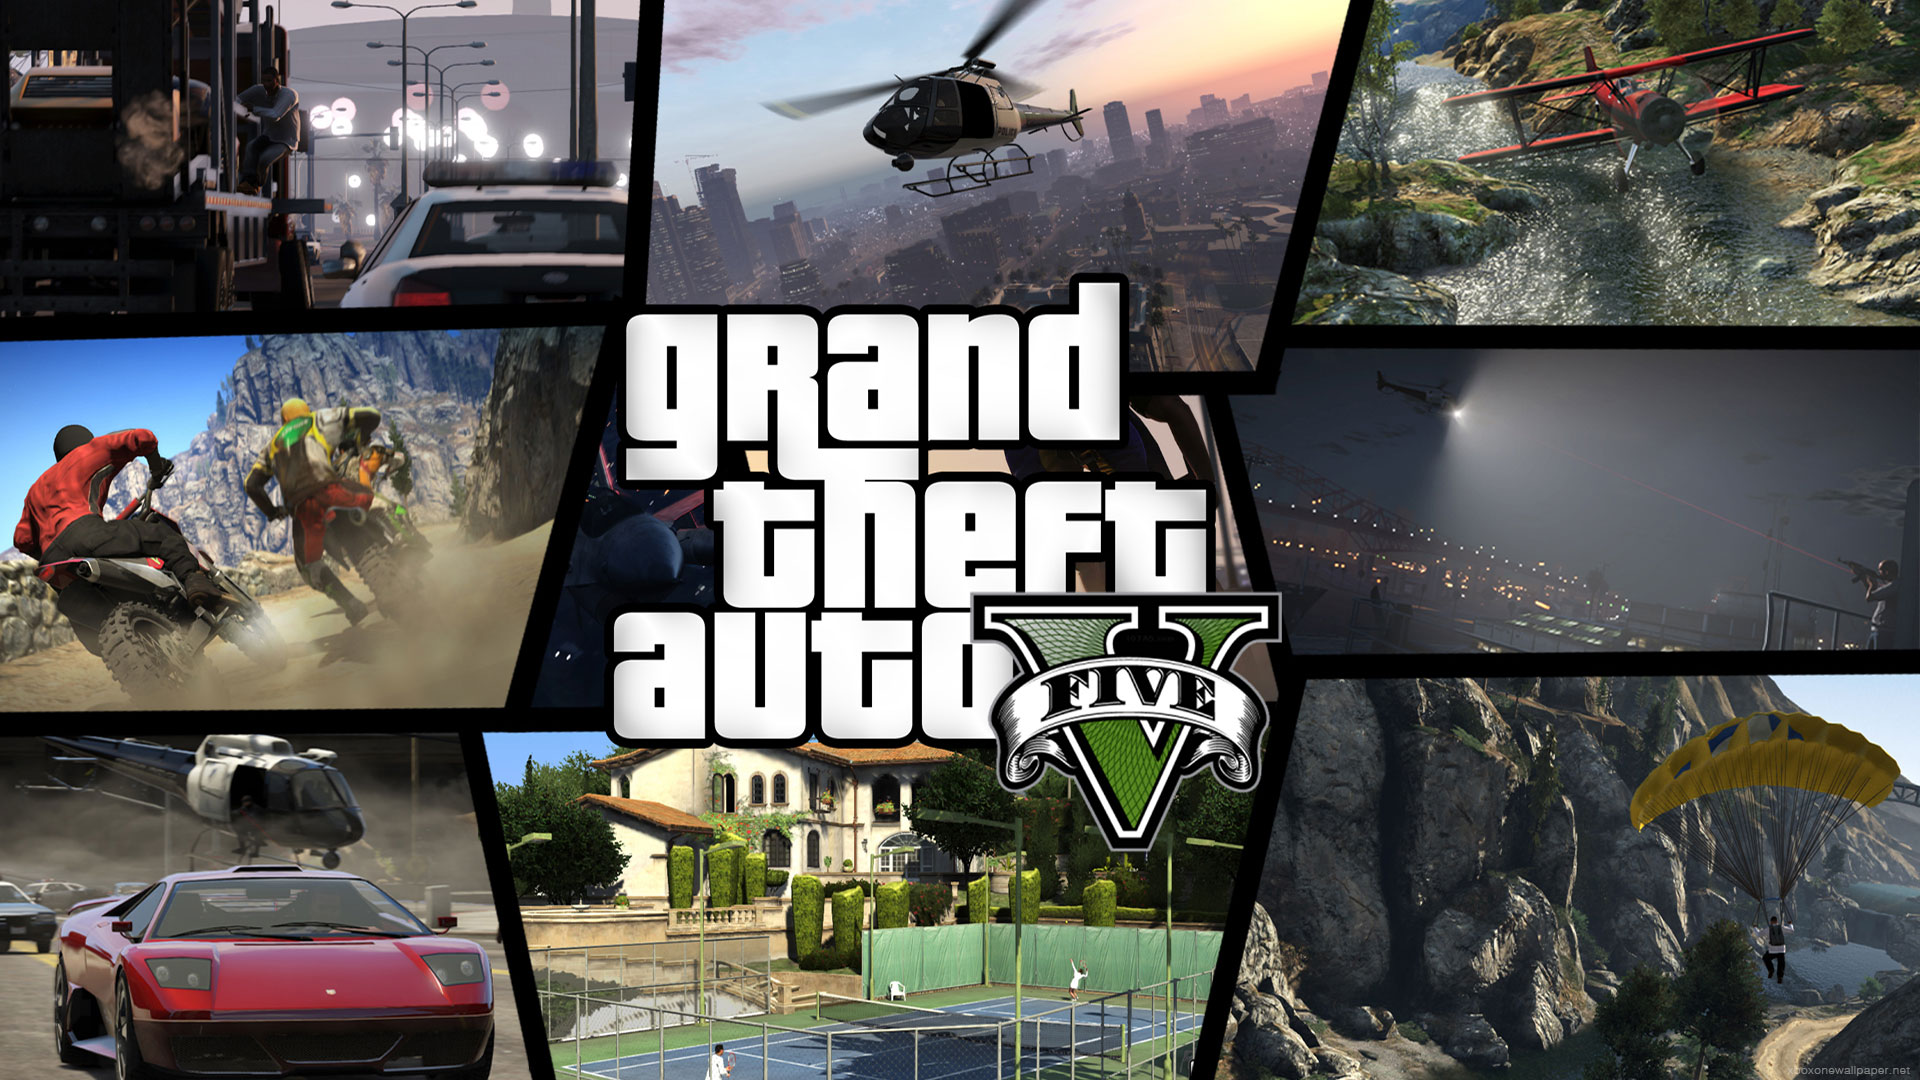 Gta v Wallpaper Xbox One Wallpaper Game HD Wallpaper 1080p 1920x1080